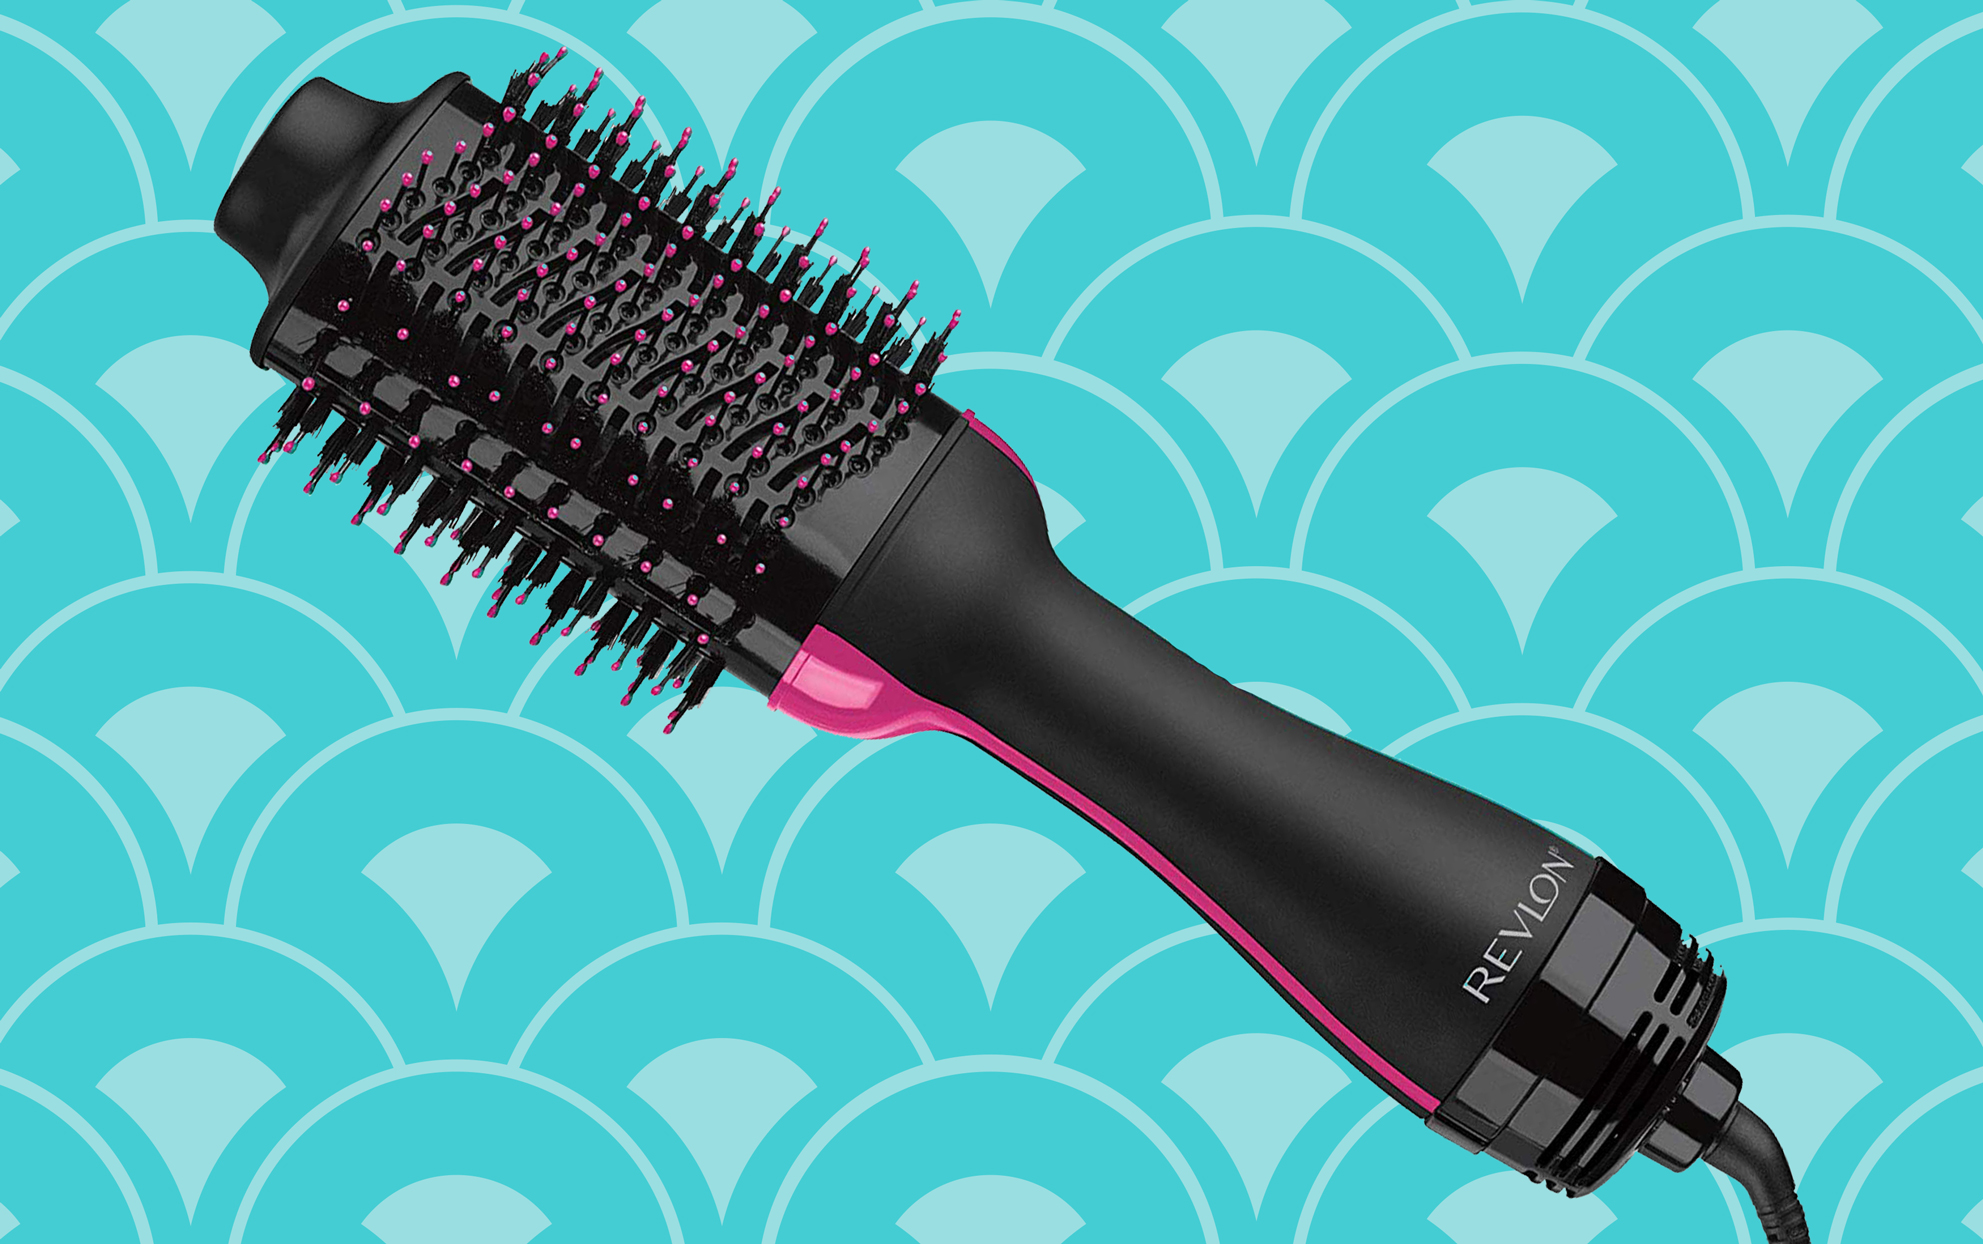 black and pink hair brush dryer on a blue background